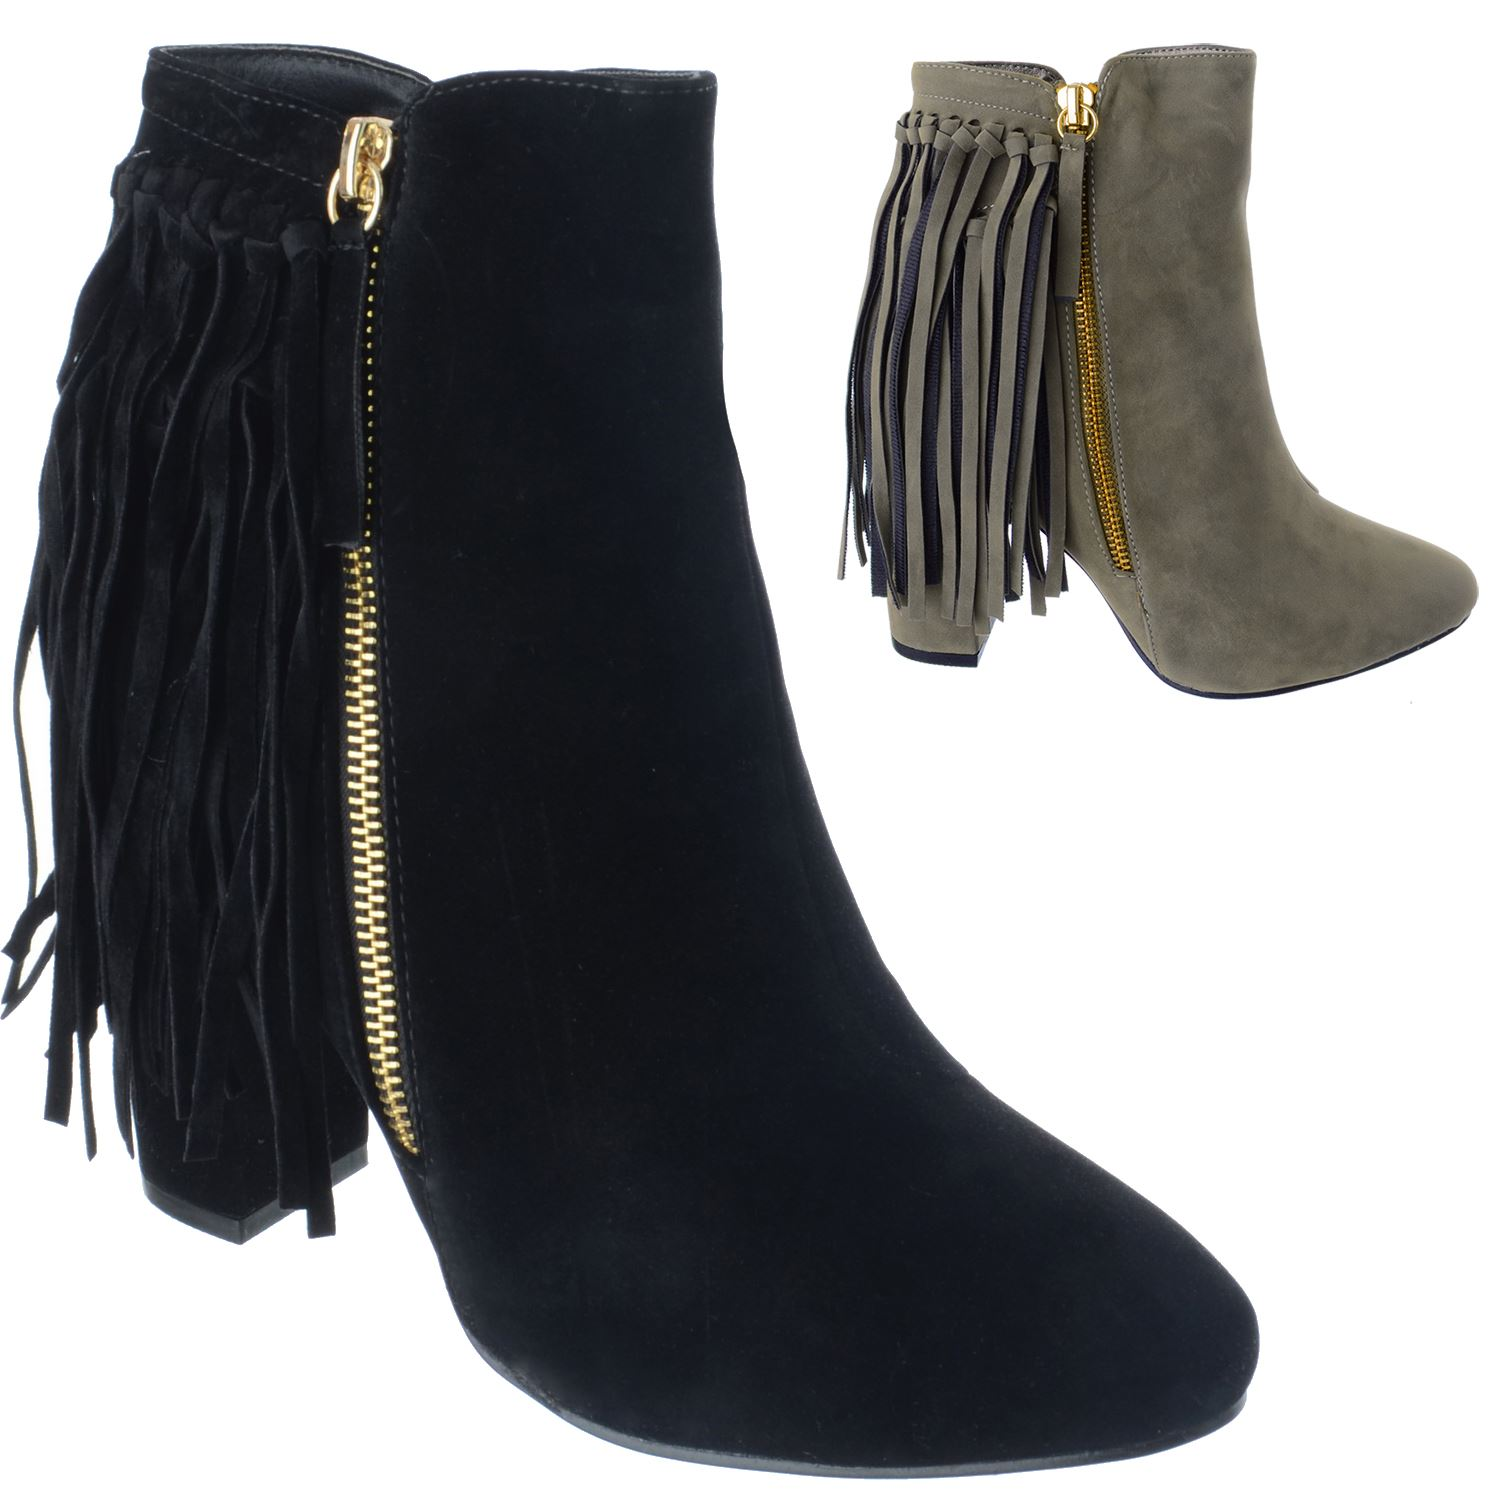 LADIES WOMENS ZIP UP TASSEL MID HIGH BLOCK HEEL CHELSEA ANKLE BOOTS SHOES SIZE